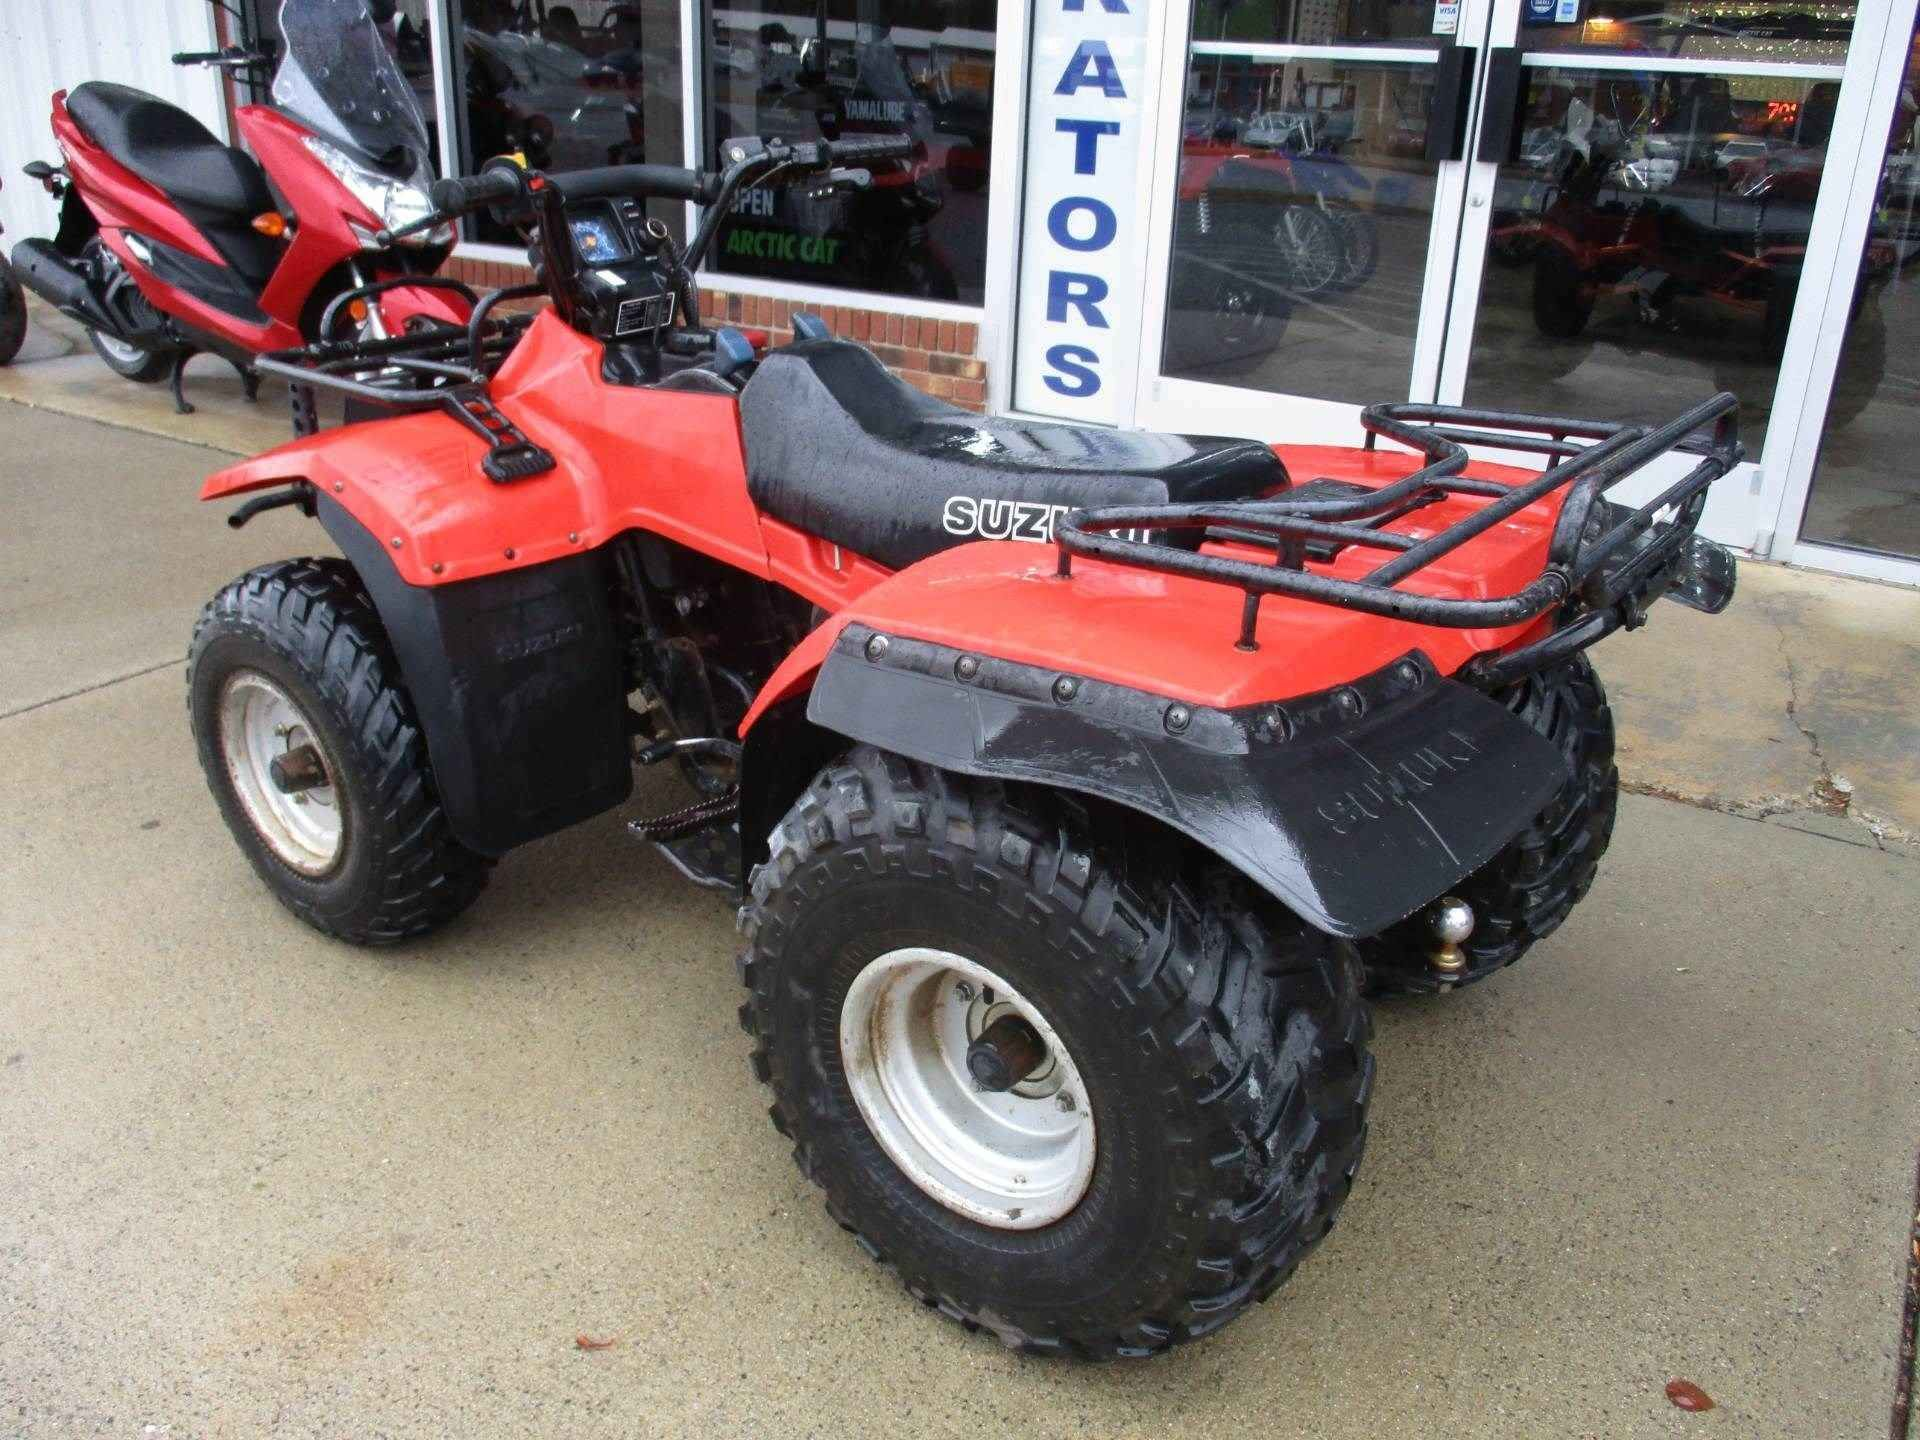 Used 1987 Suzuki QUADRUNNER 250 ATVs For Sale in North Carolina.